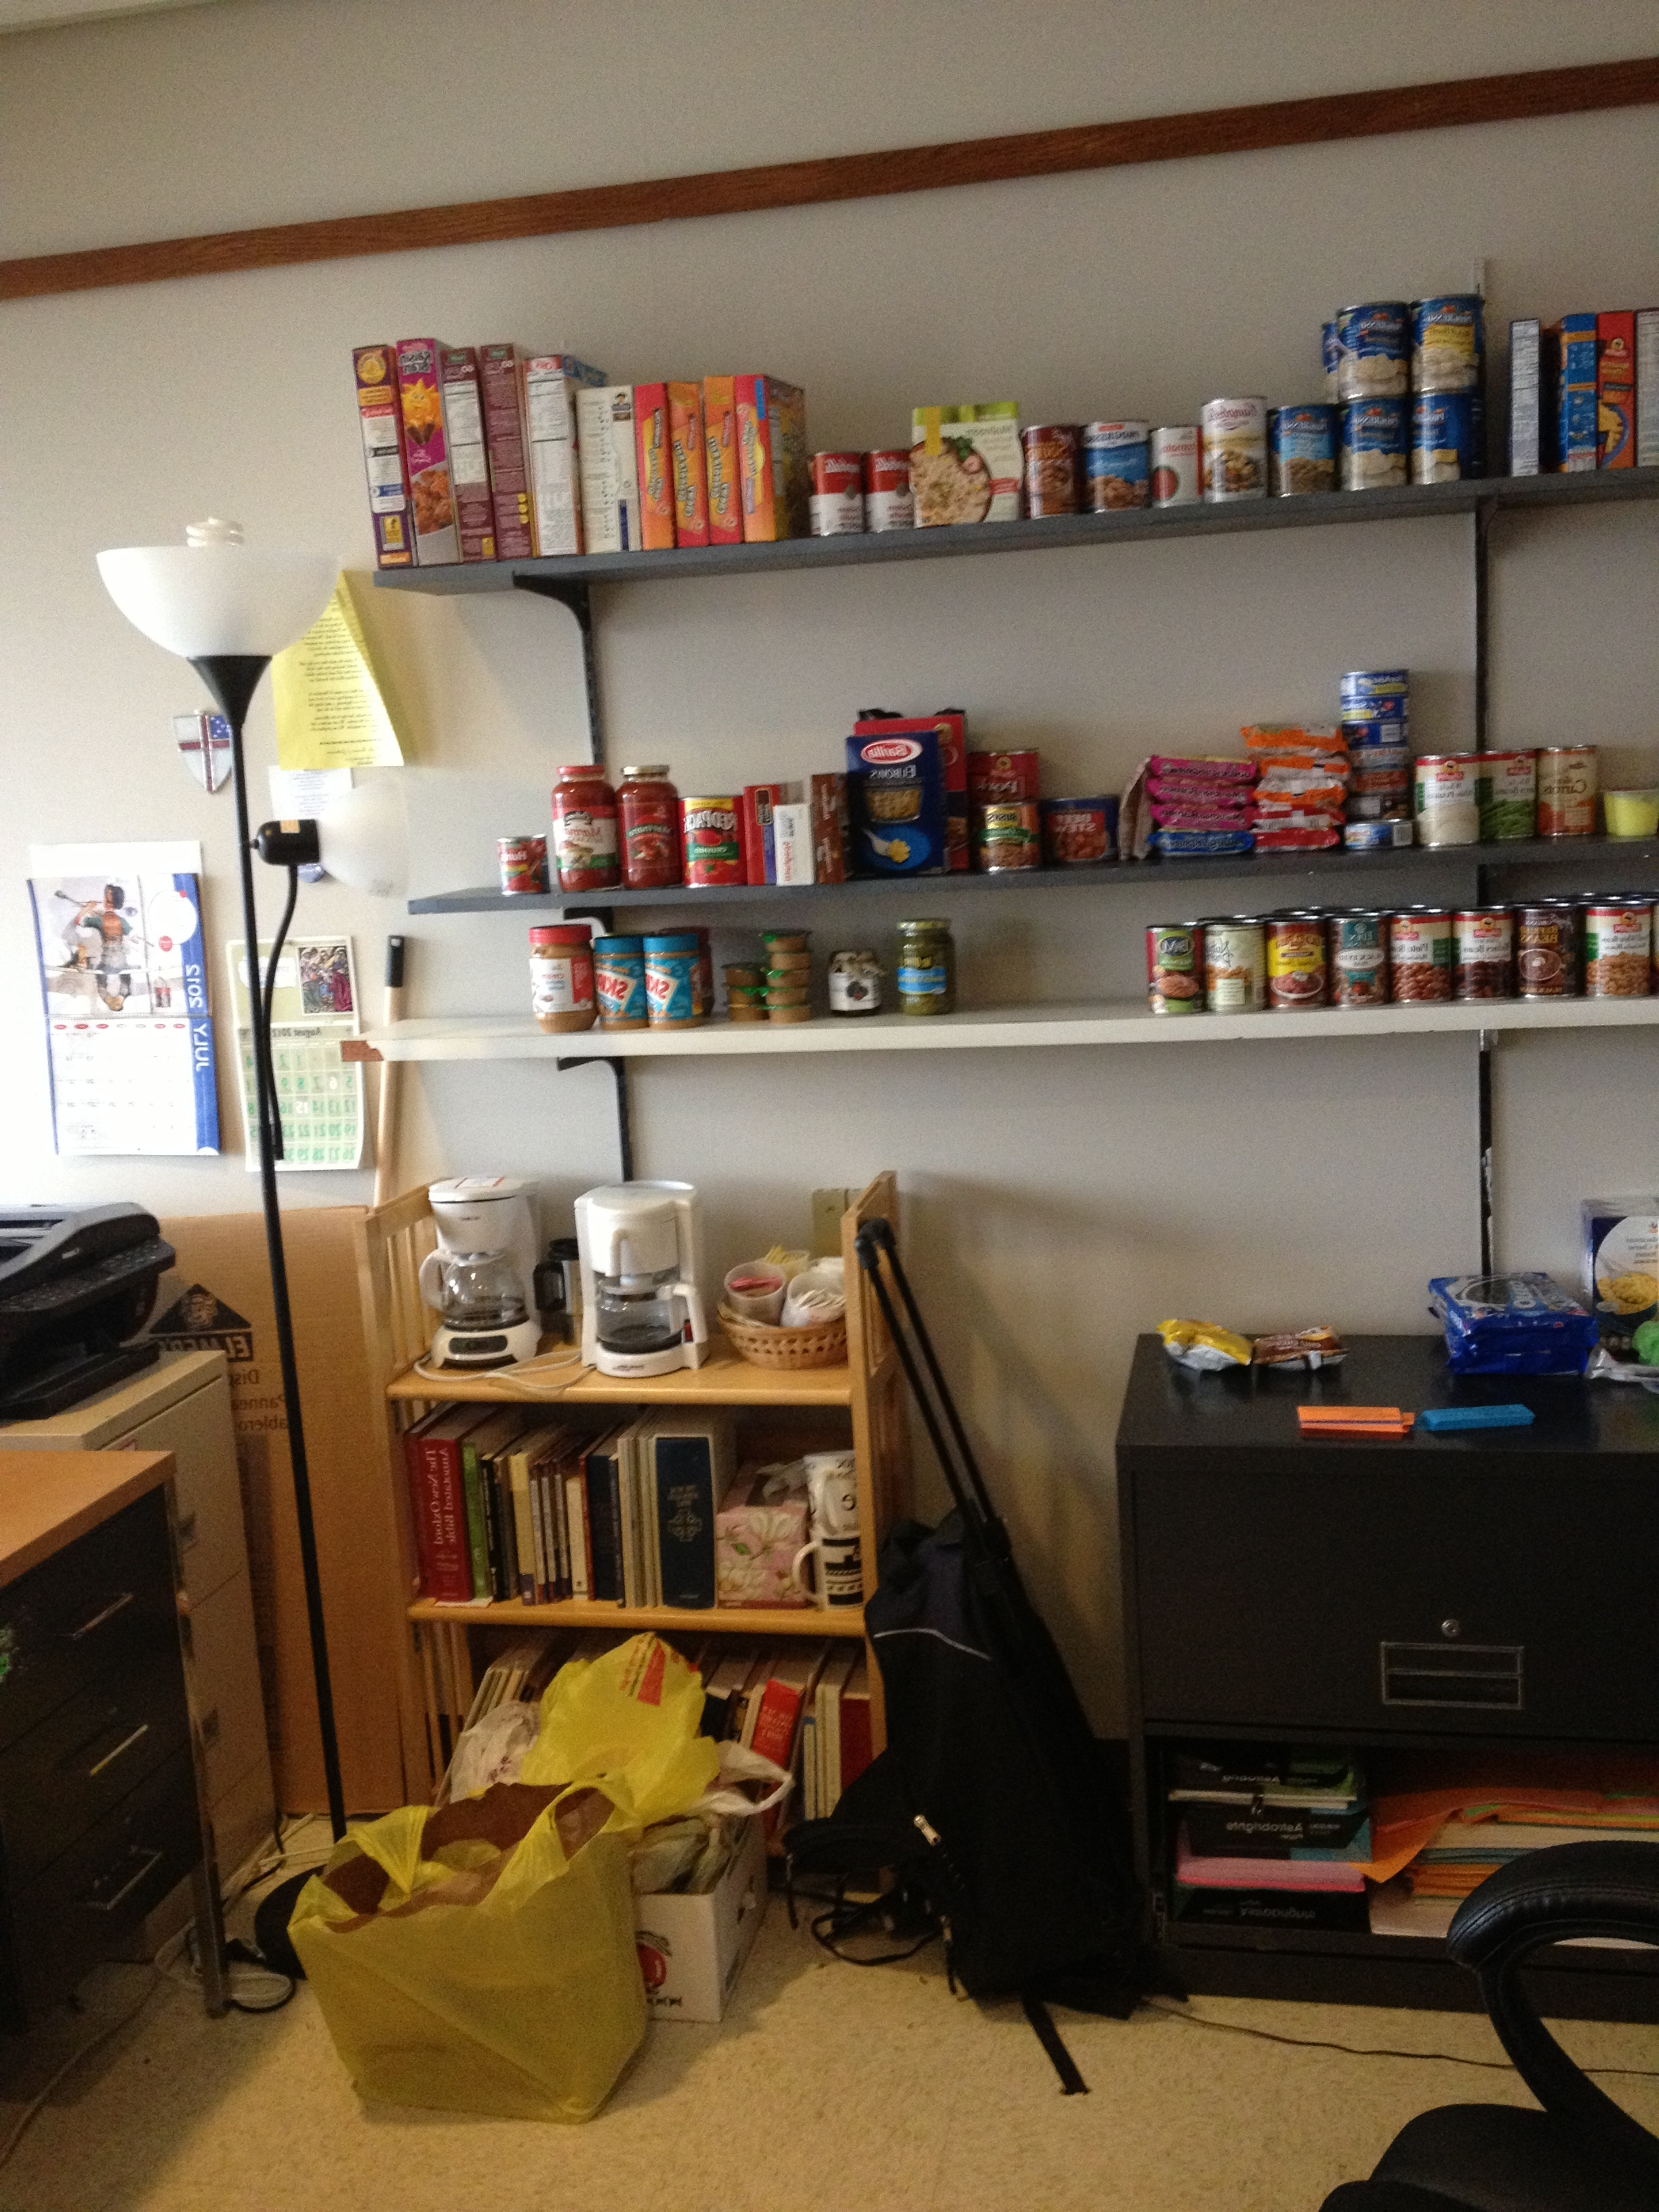 The food pantry is still a work